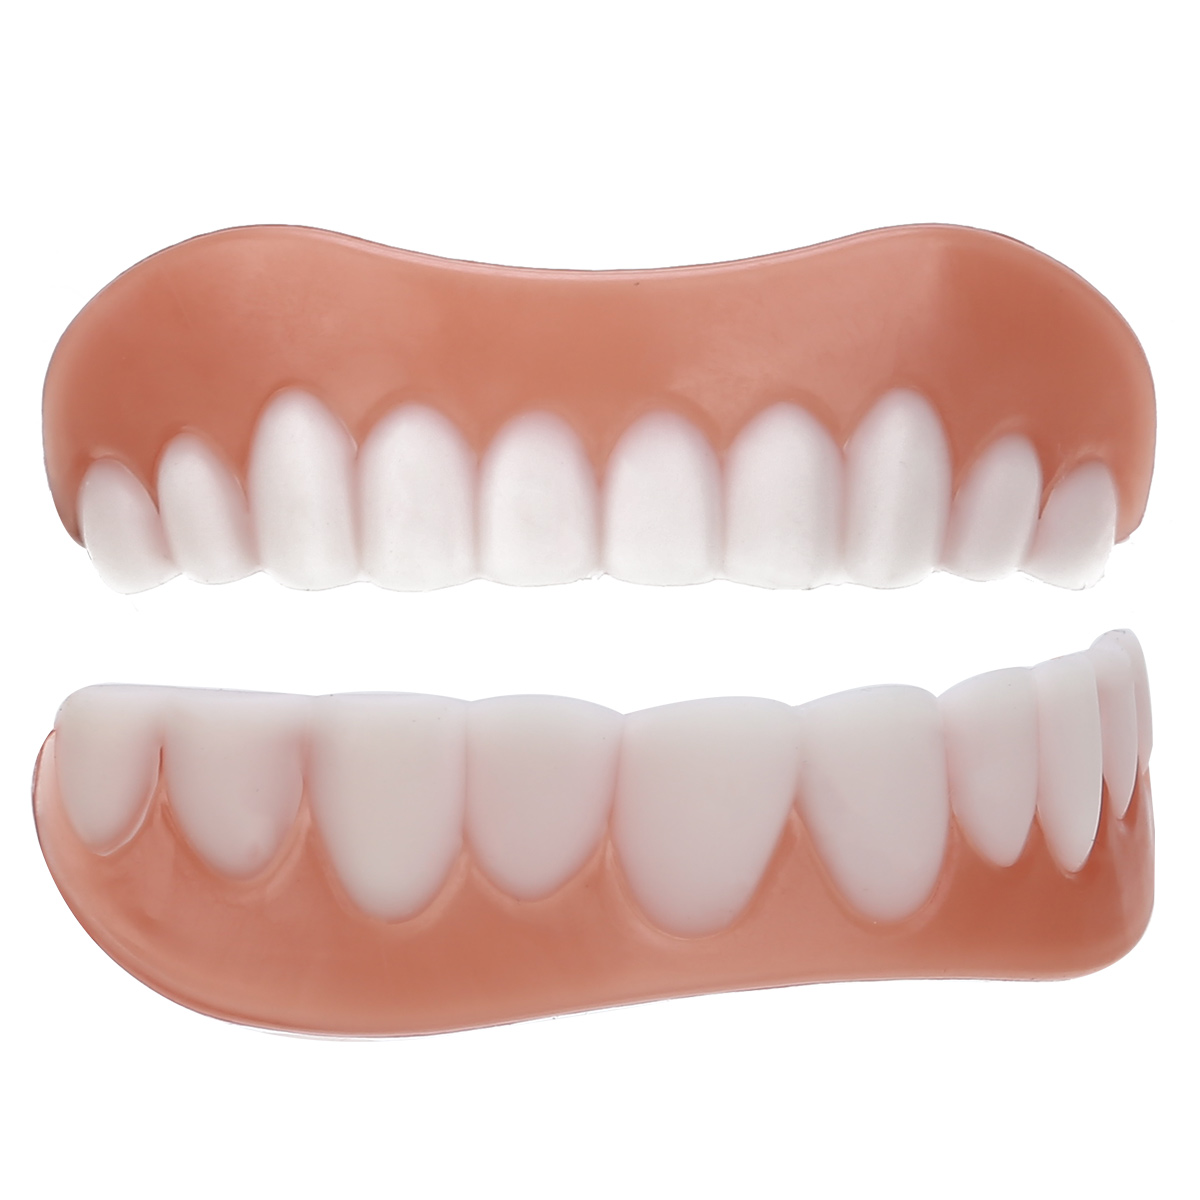 Top & Bottom Teeth Veneer Smile Perfect Snap Silicone Simulation Flex Denture Veneer Cosmetic Teeth Cover Whitening Braces